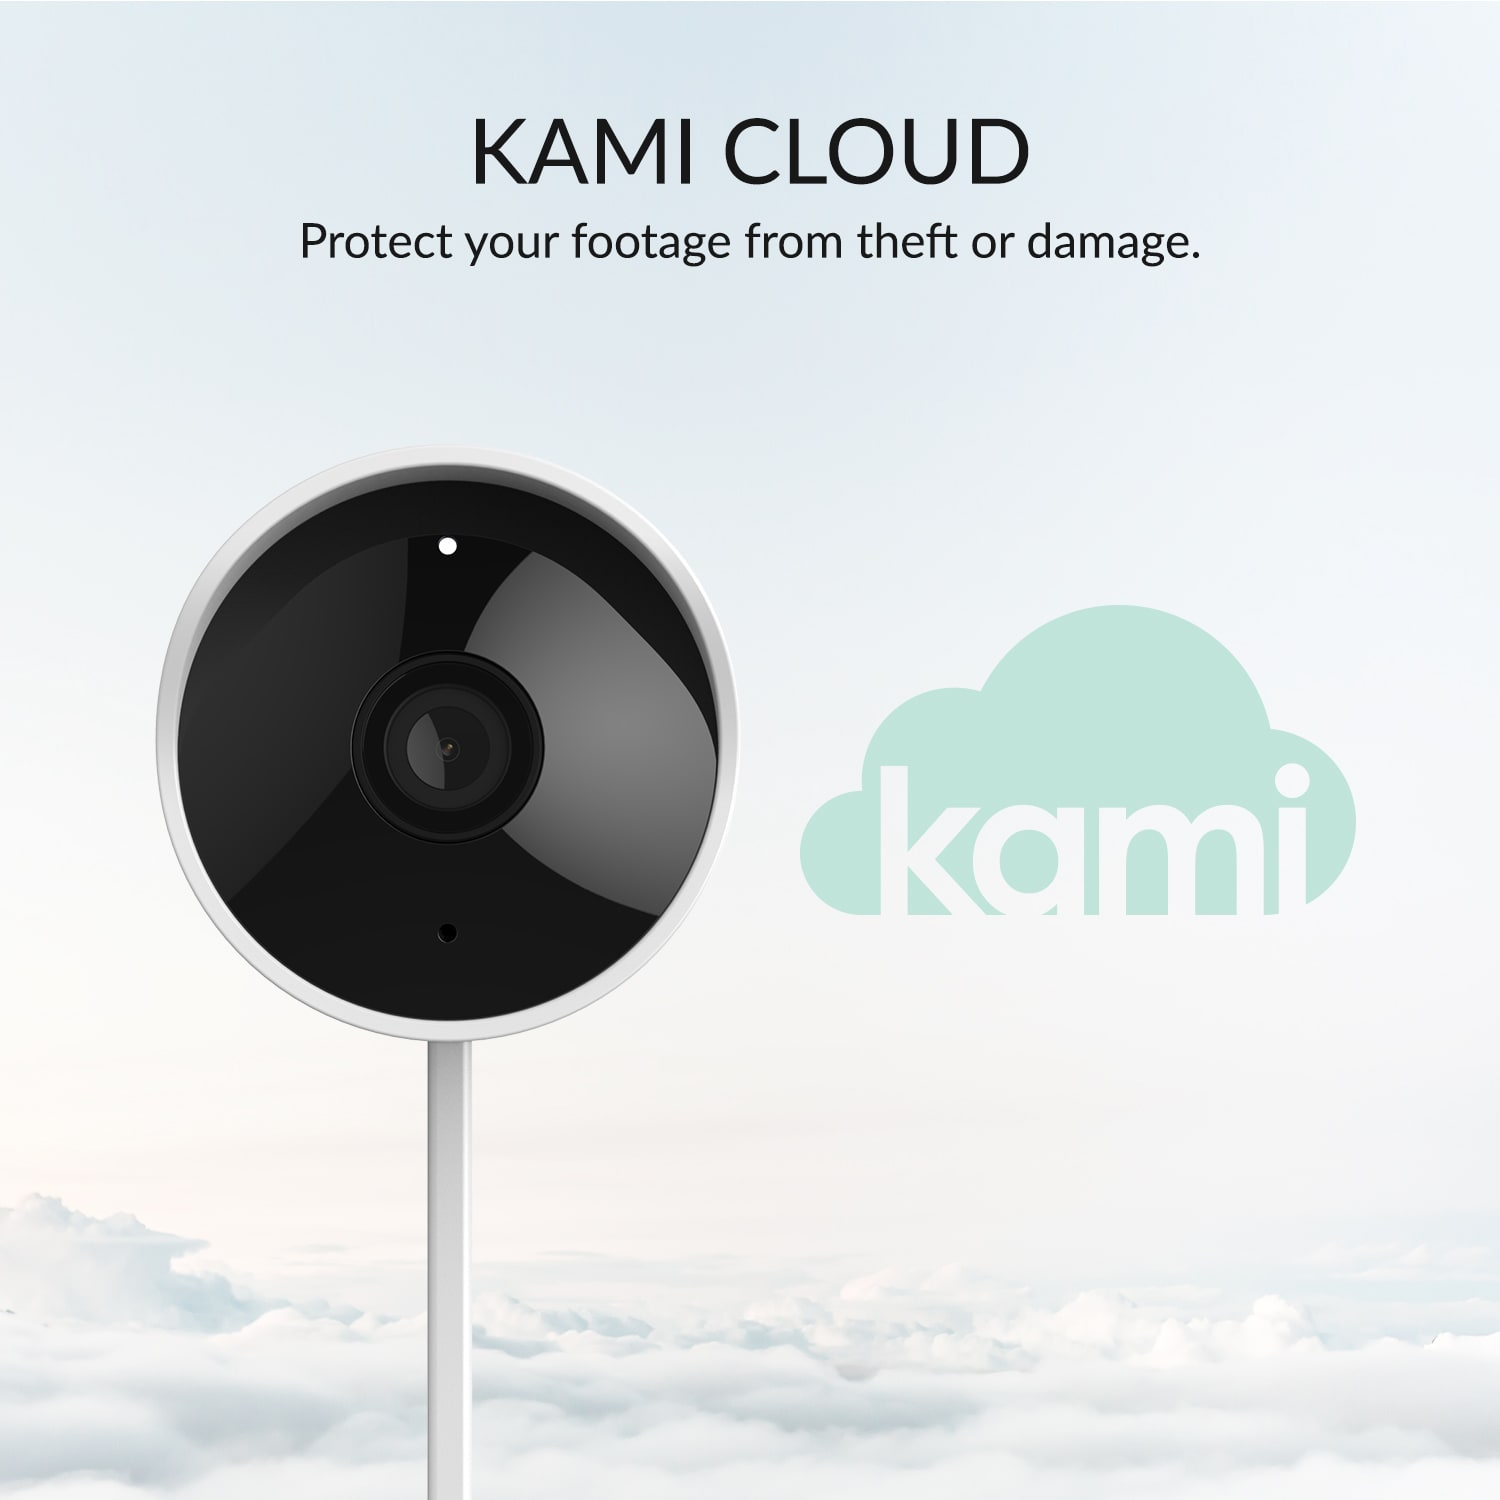 Kami Cloud - Protect your footage from theft or damage